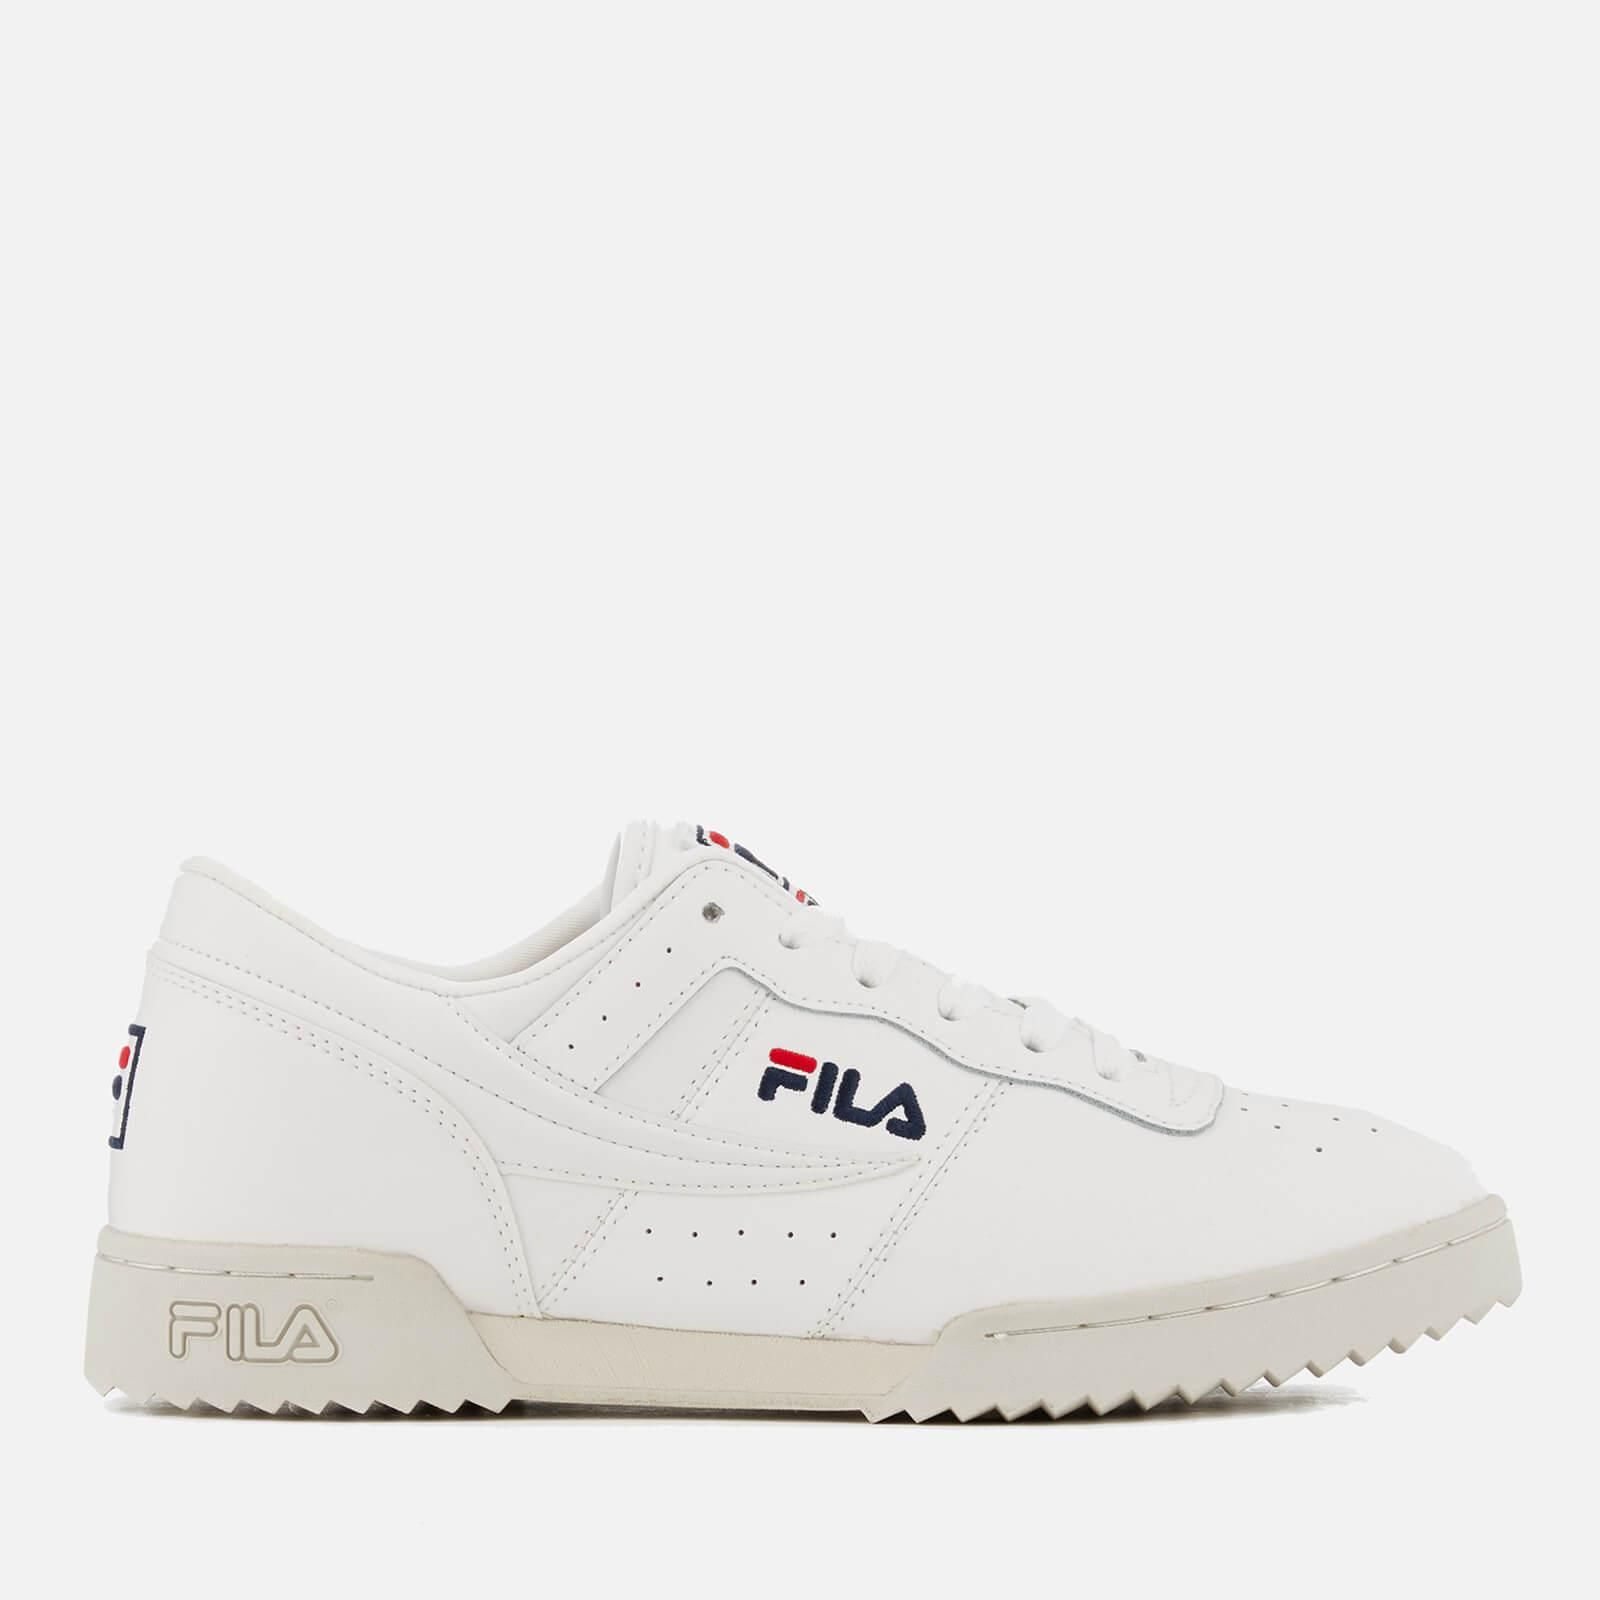 official photos a7782 35dd2 Lyst - Fila Original Fitness Ripple Trainers in White for Men